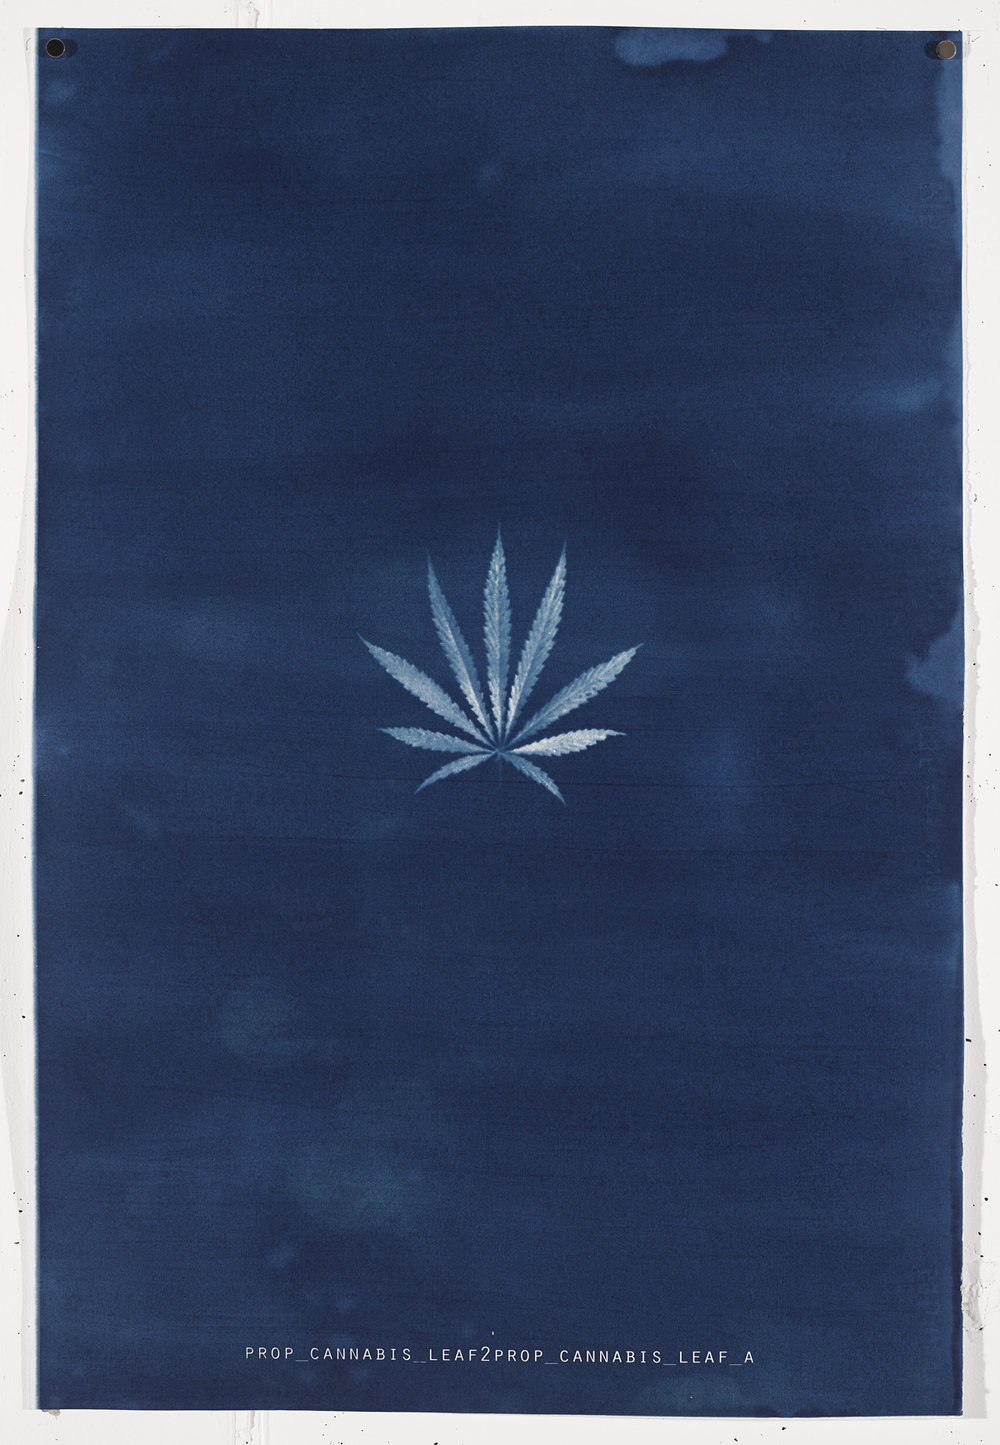 CANNABIS LEAF 2017 Unique cyanotype print on Frabriano No.5.  90.4cm x 61cm